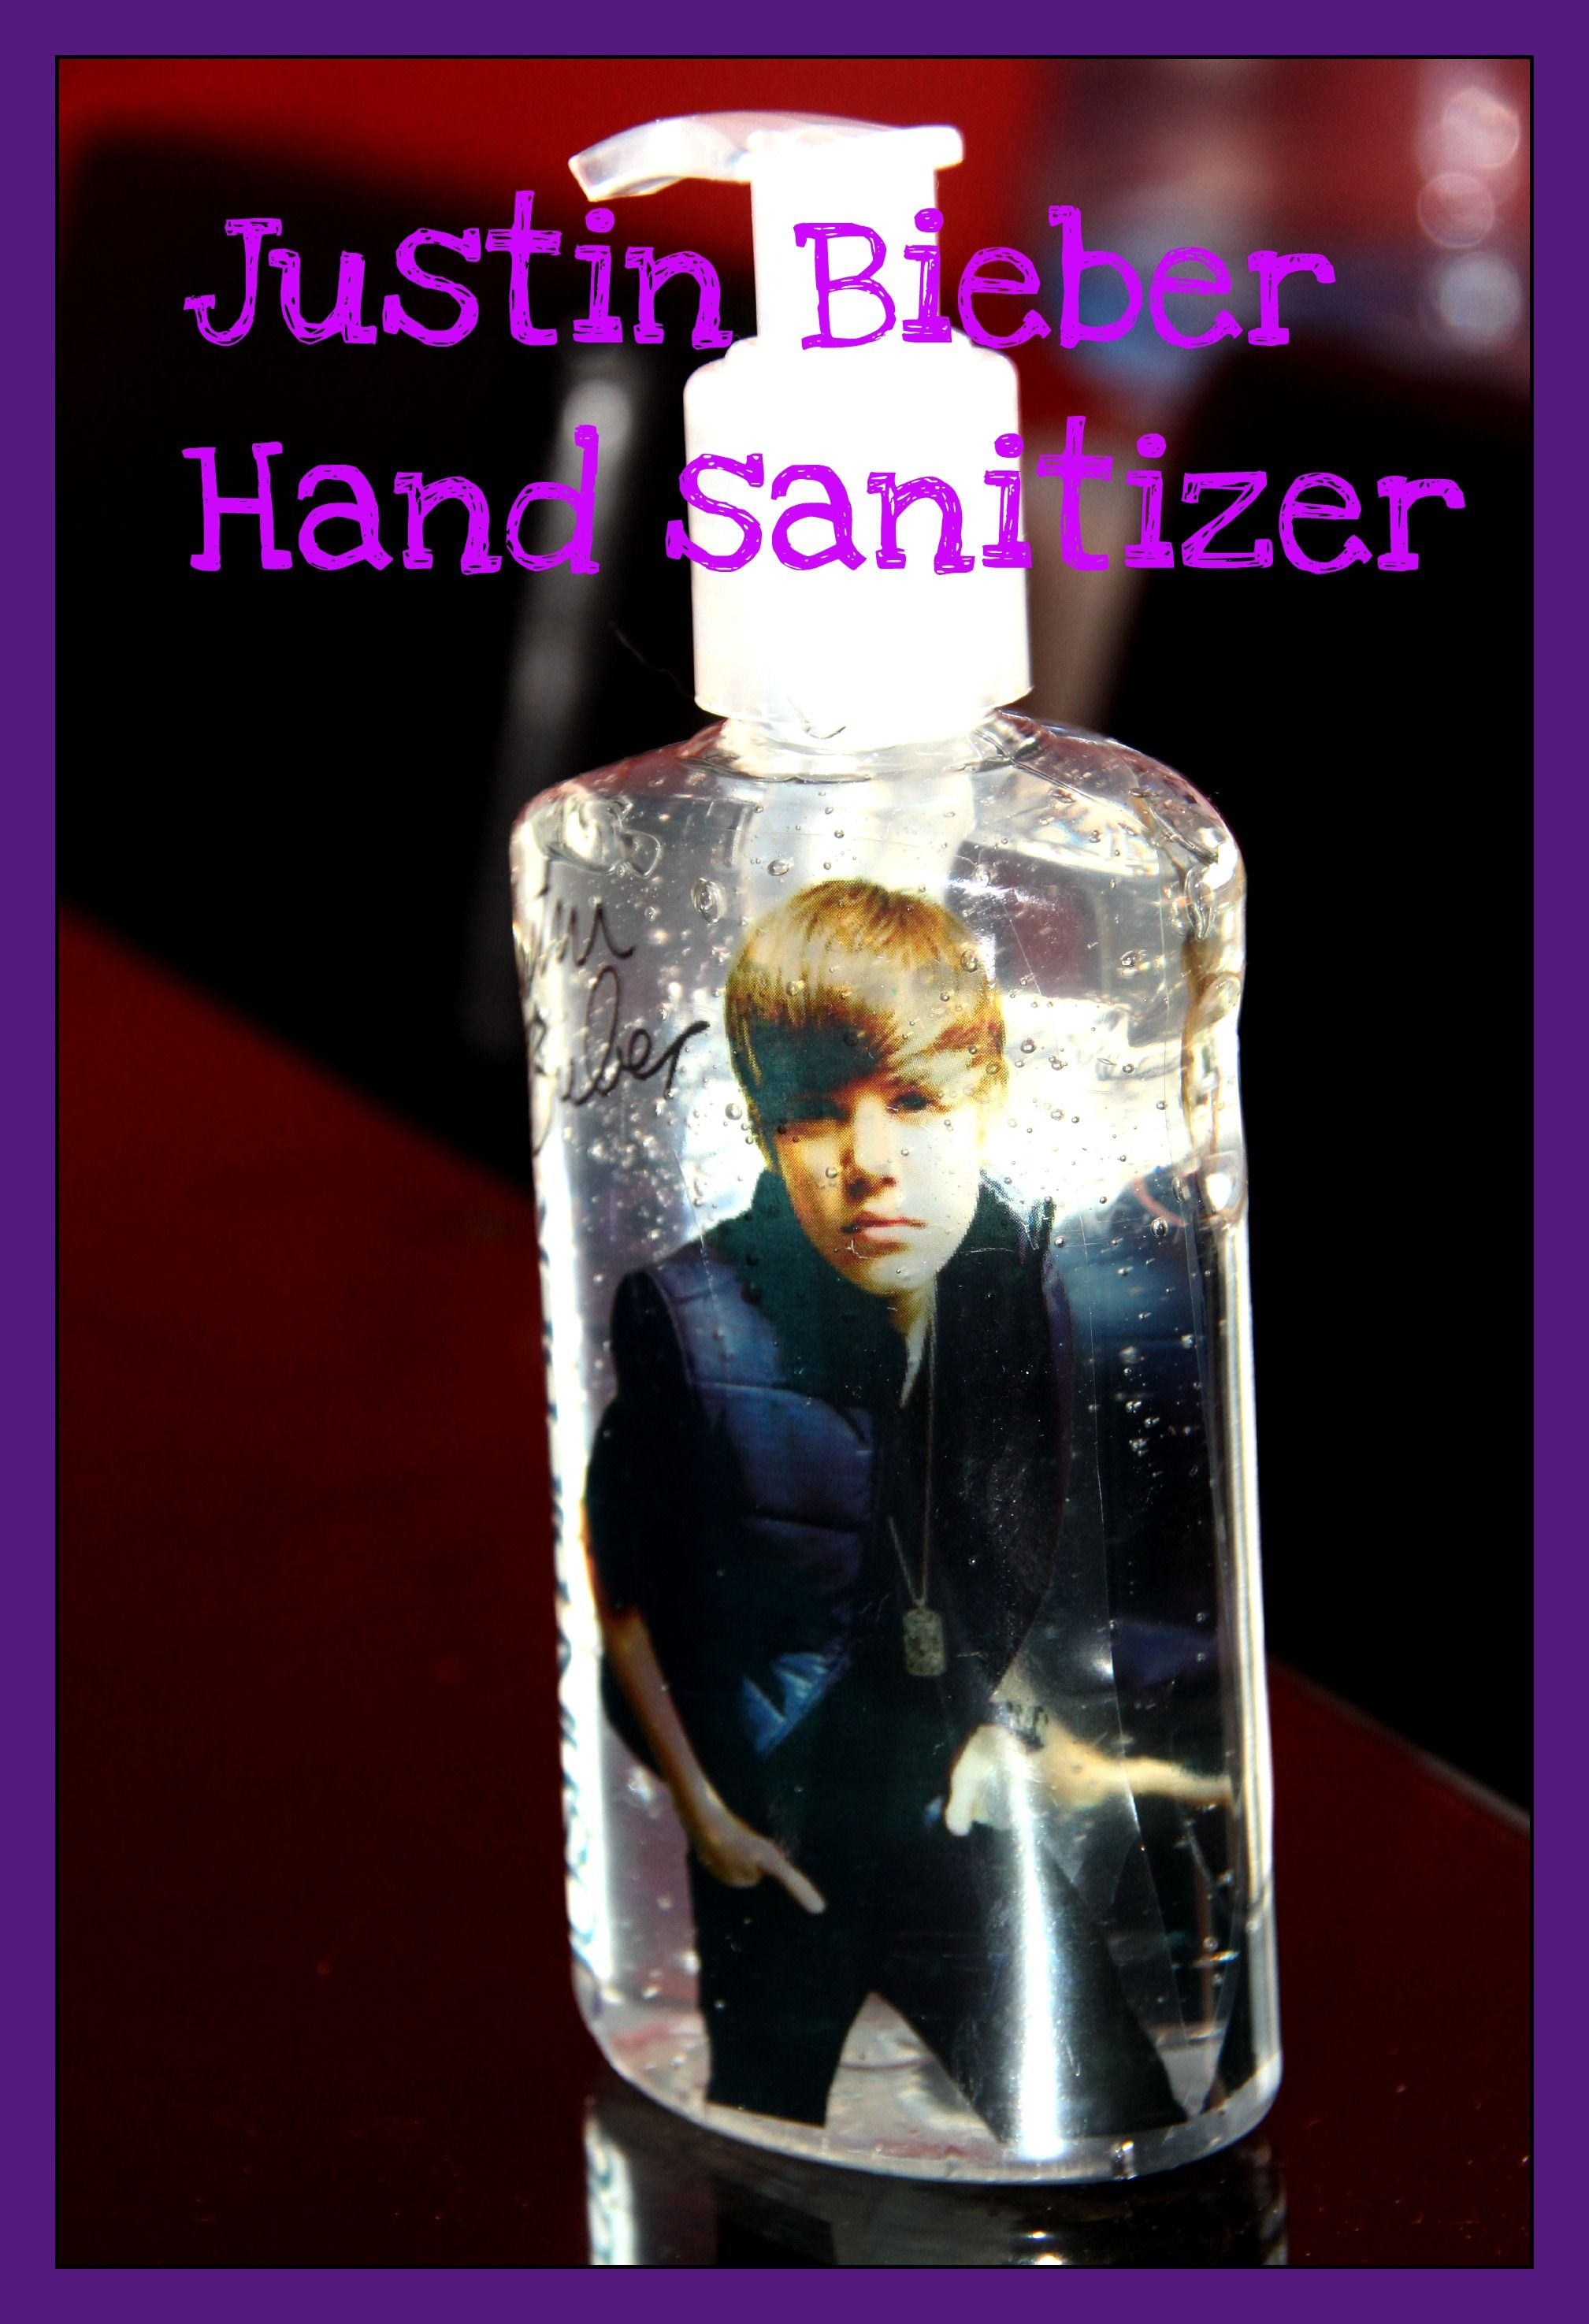 Justin Bieber Hand Sanitizer Bottles Is There Nothing This Kid